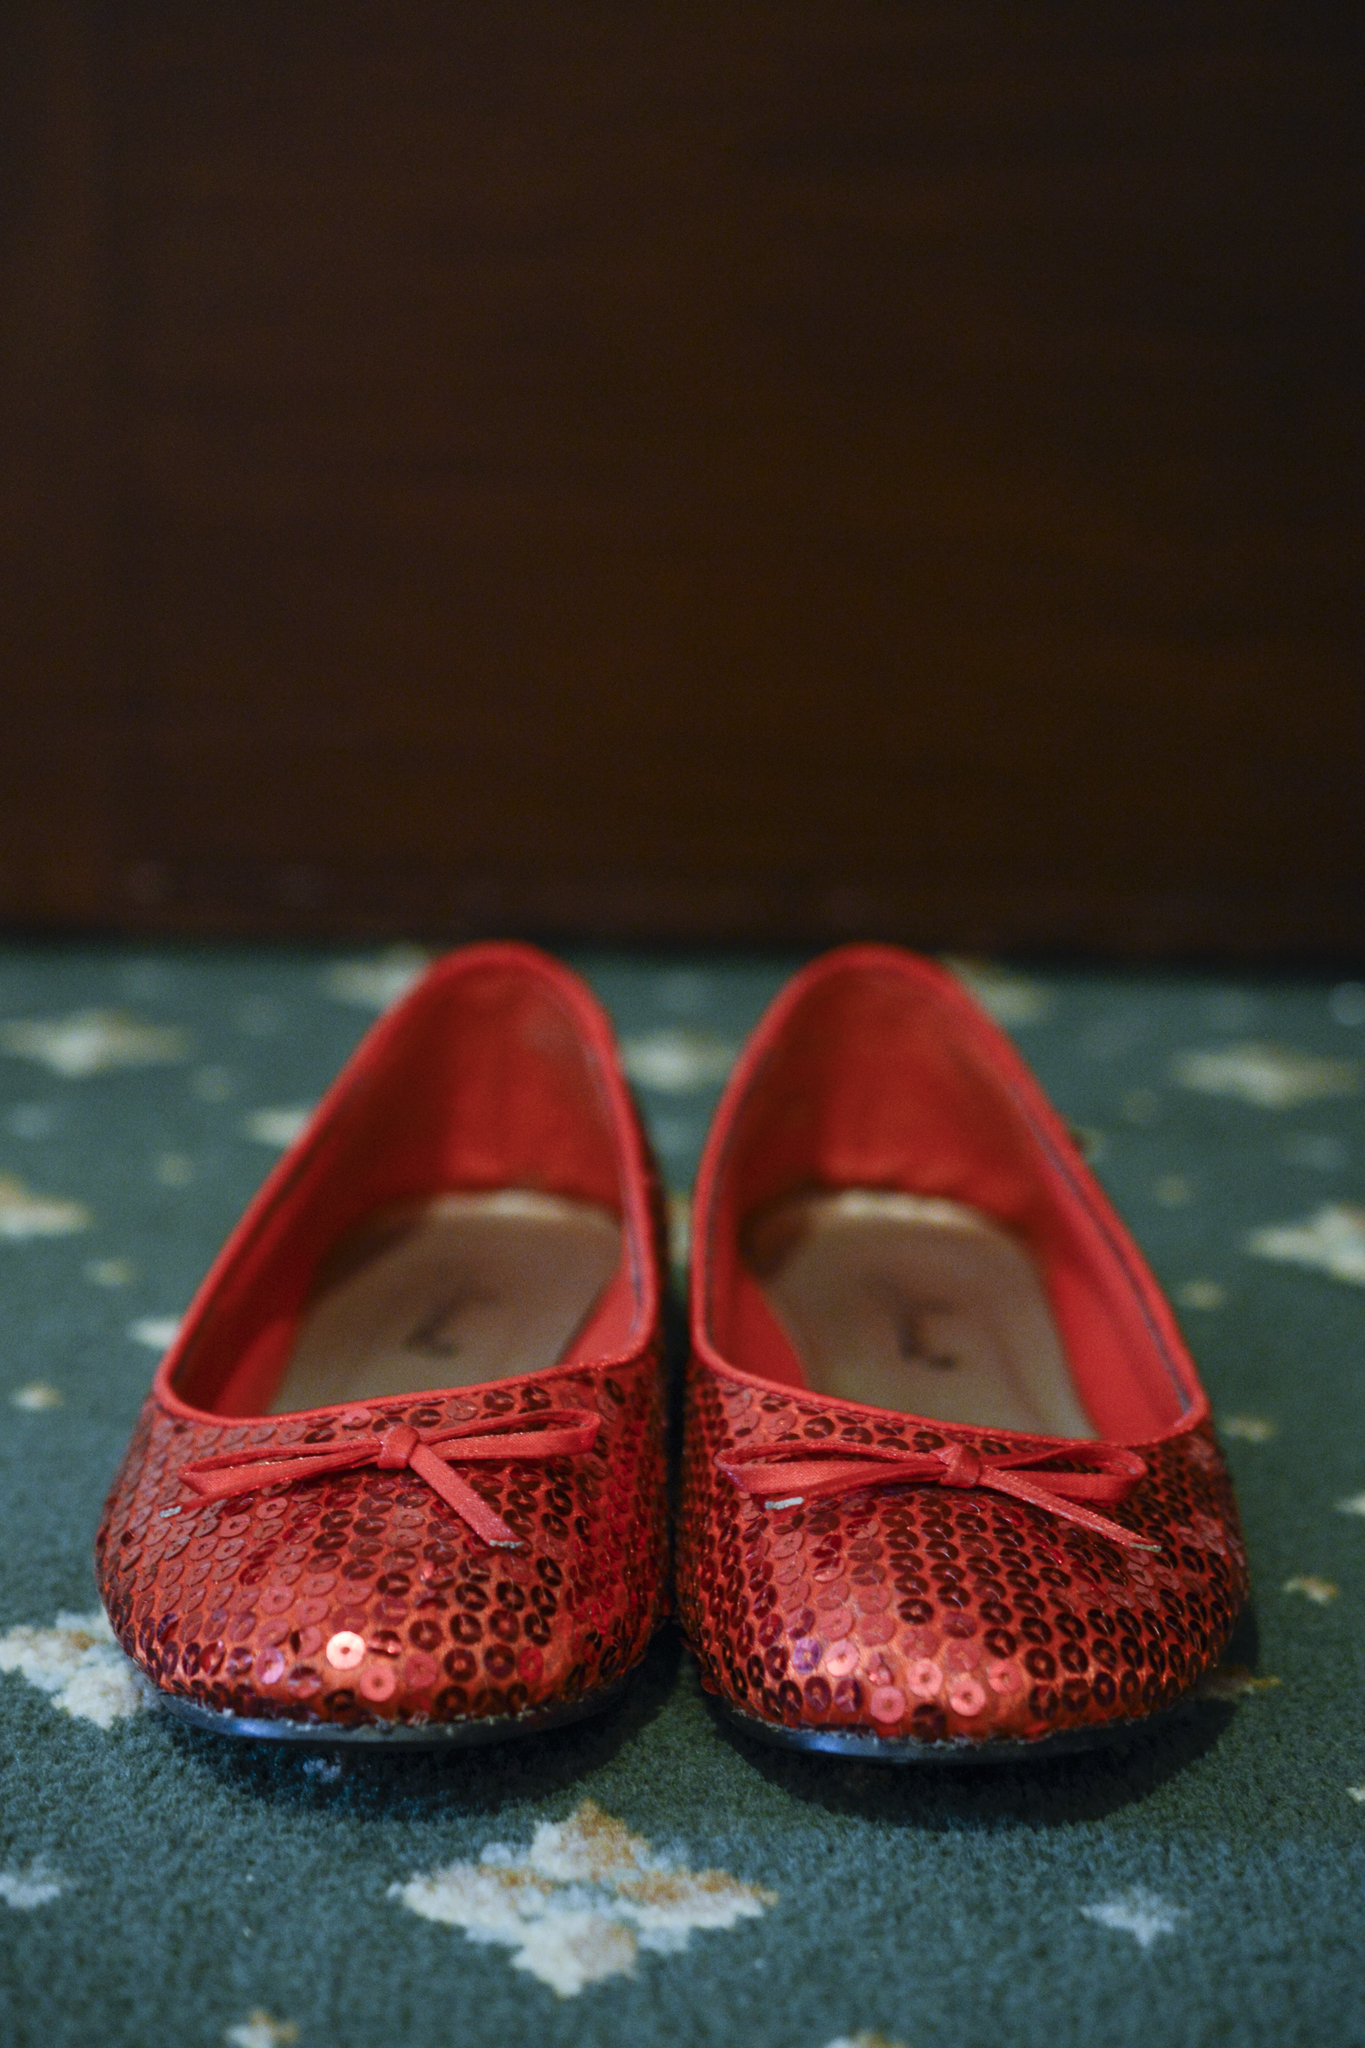 Sparkly red wedding shoes